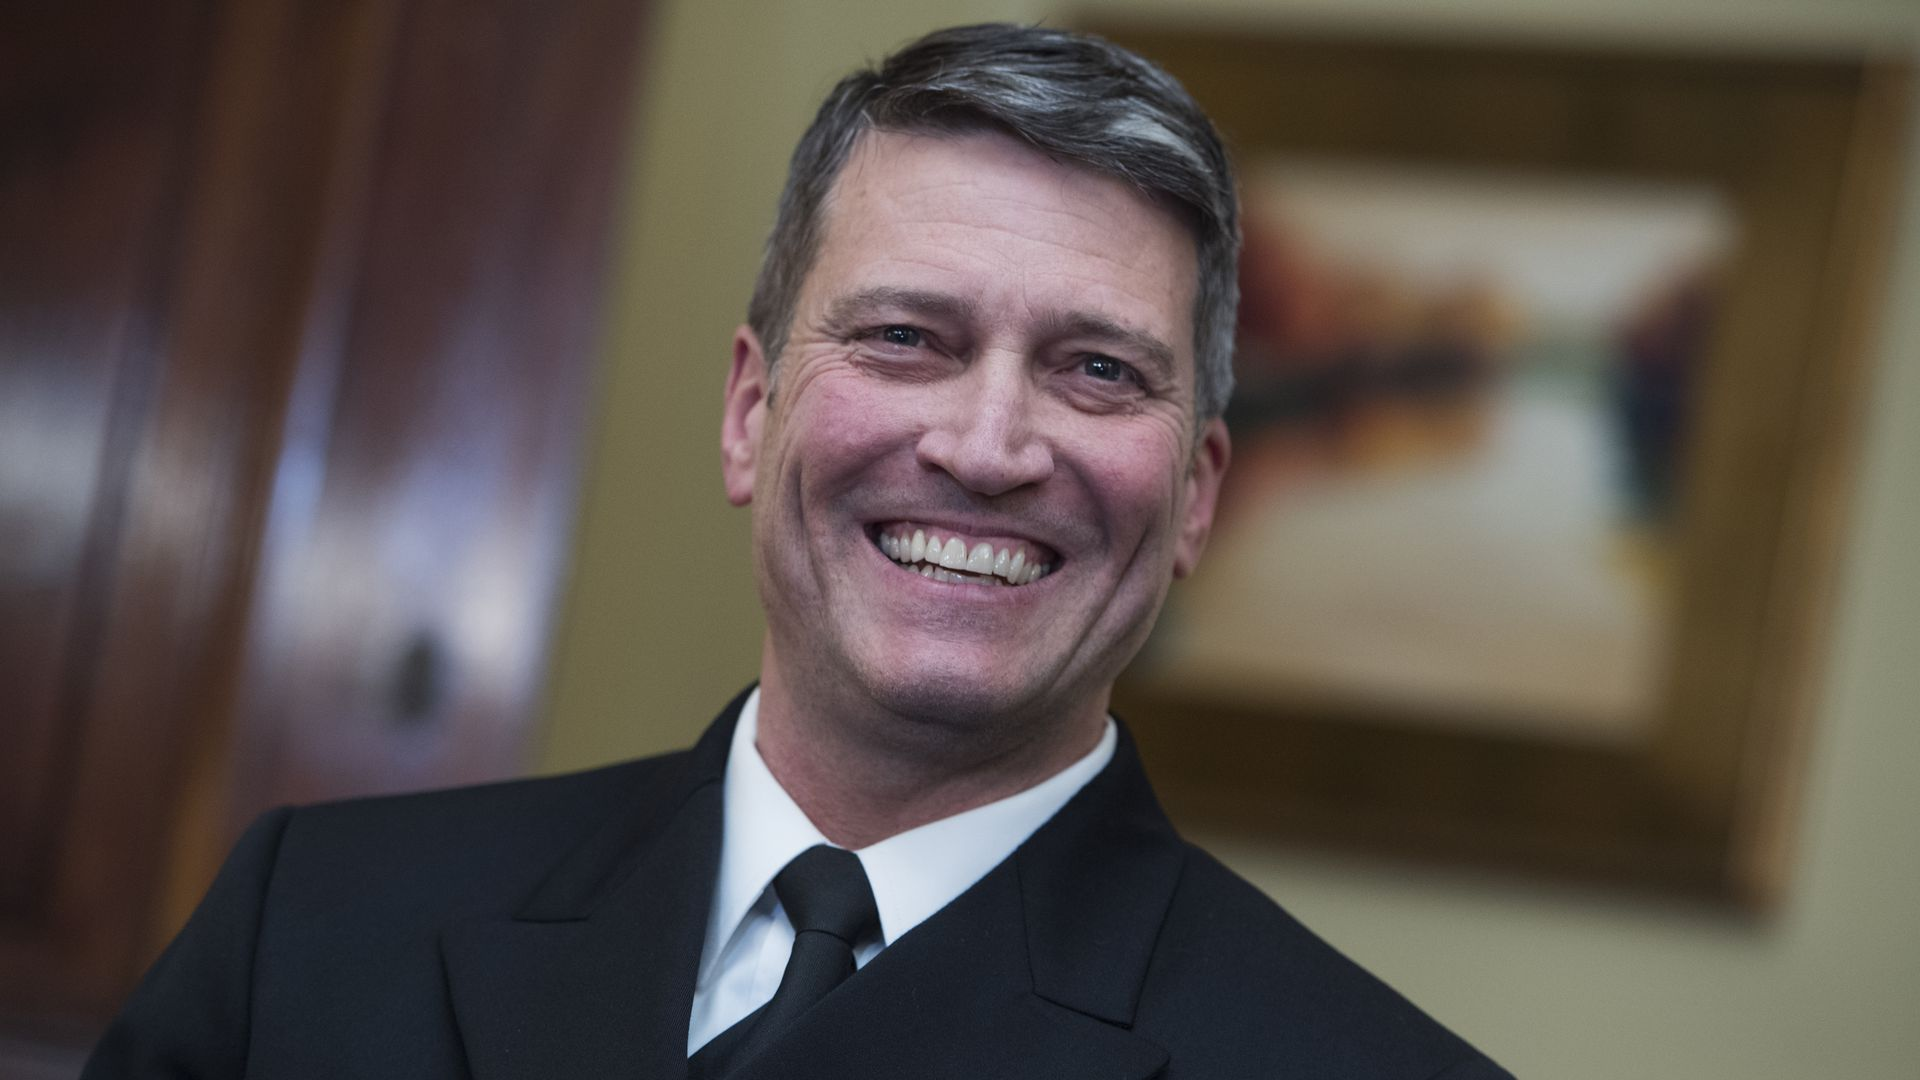 Ronny Jackson in a meeting on Capitol Hill